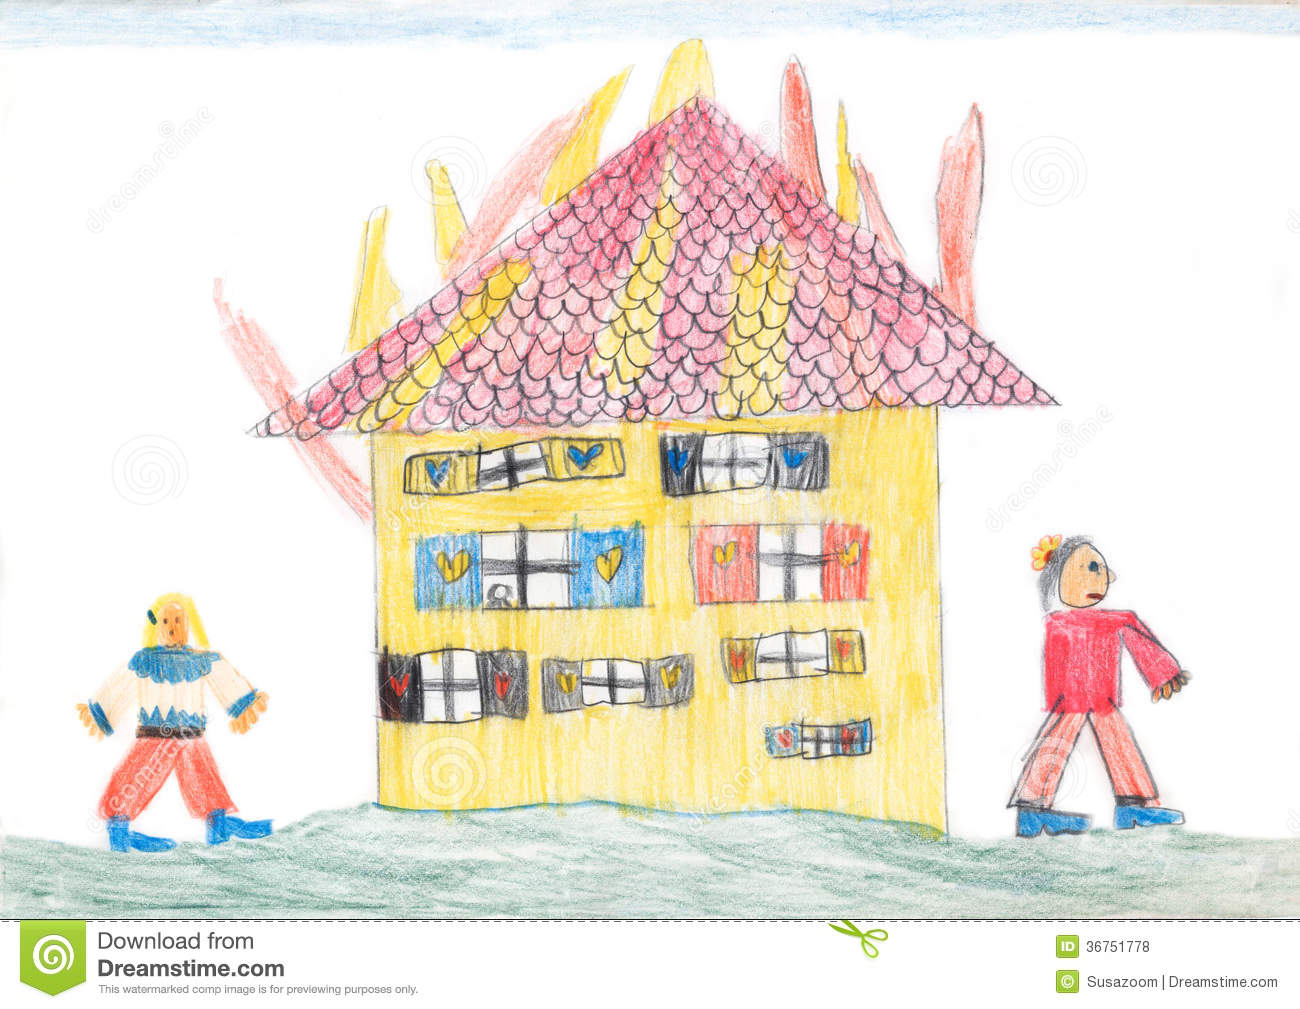 It is an image of Priceless Burning House Drawing